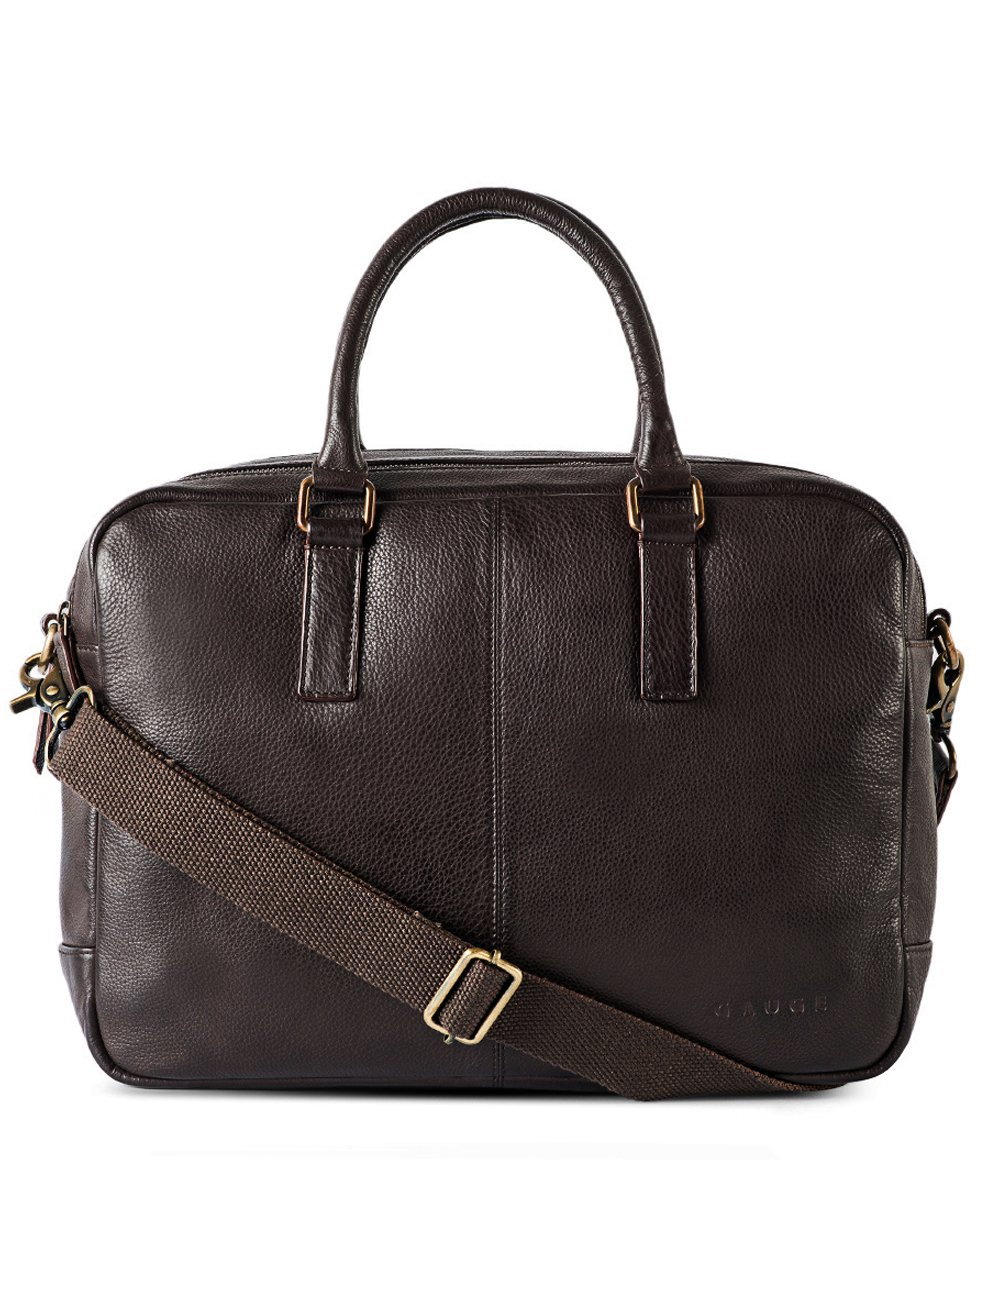 Gauge 15.5 inch Leather Laptop Bag Messenger Bag Office Briefcase College Bag for Men (Brown)